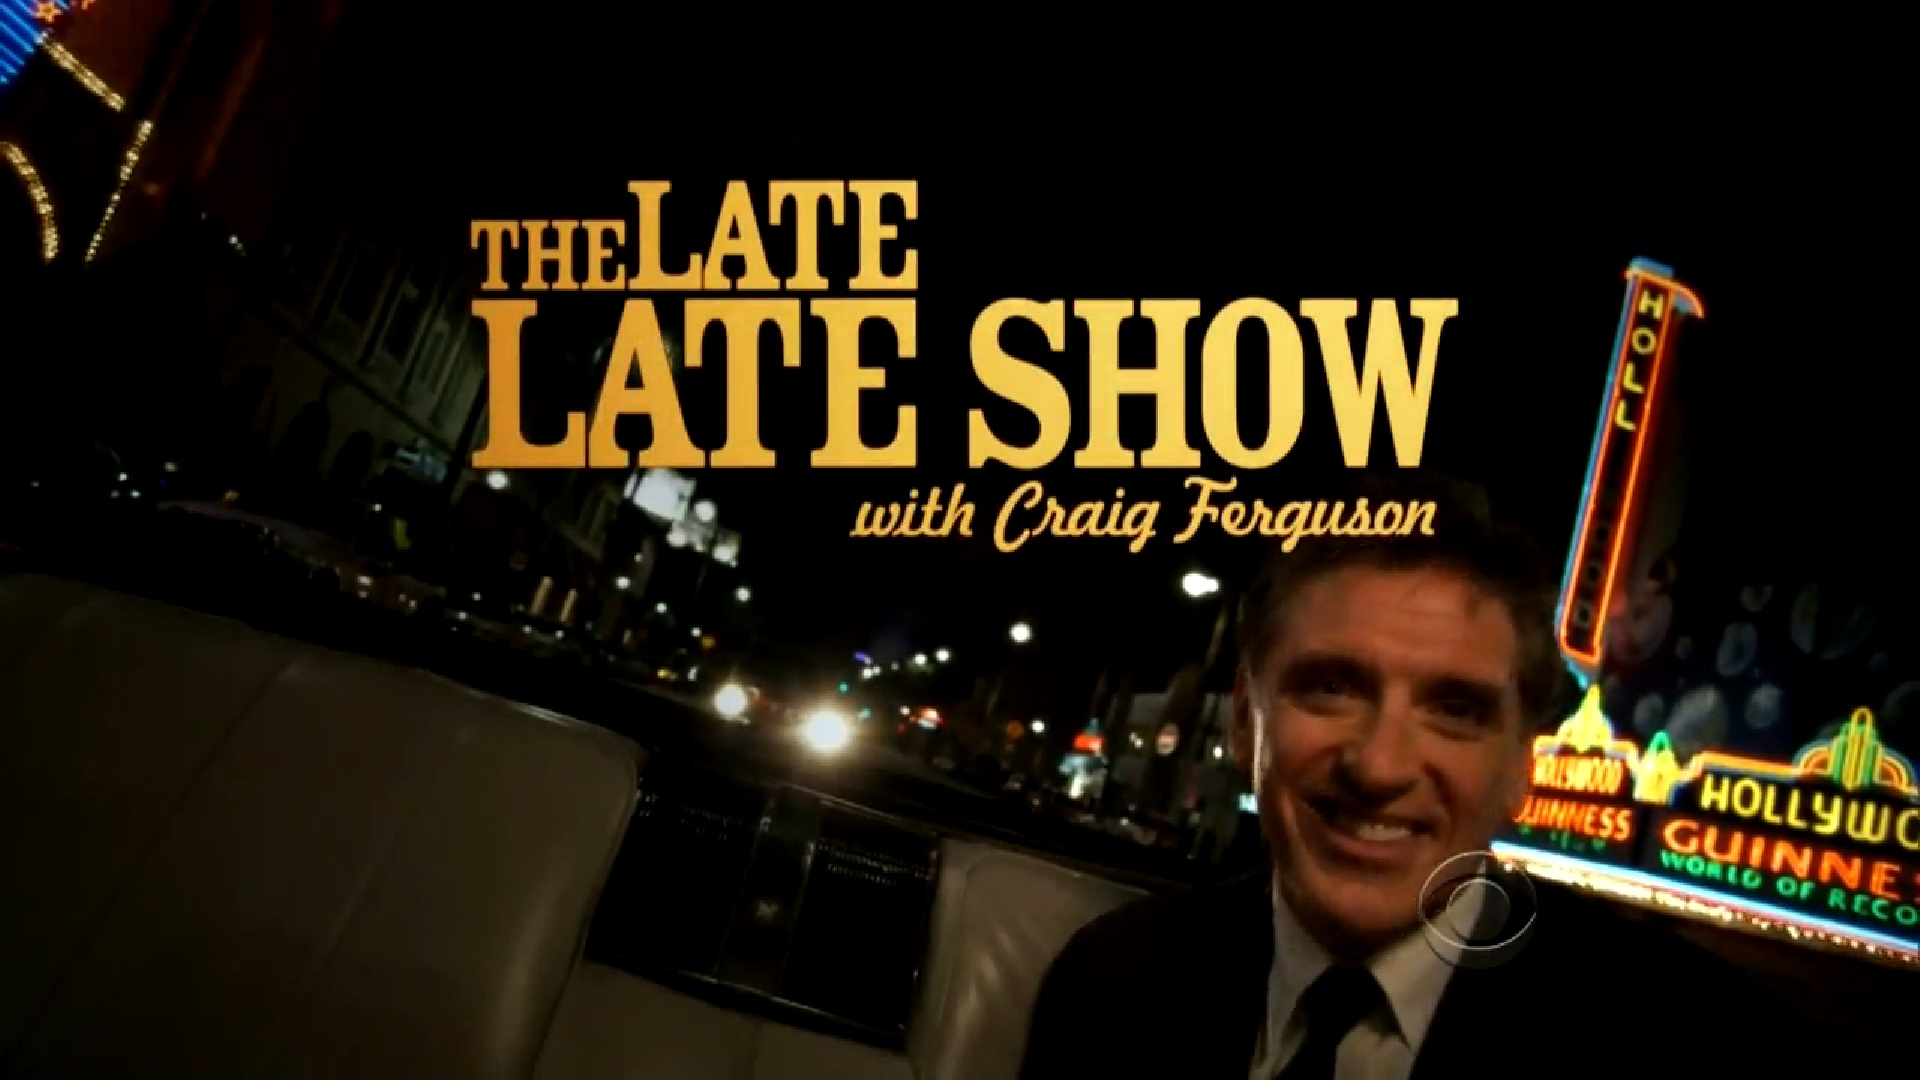 The_Late_Late_Show_with_Craig_Ferguson_